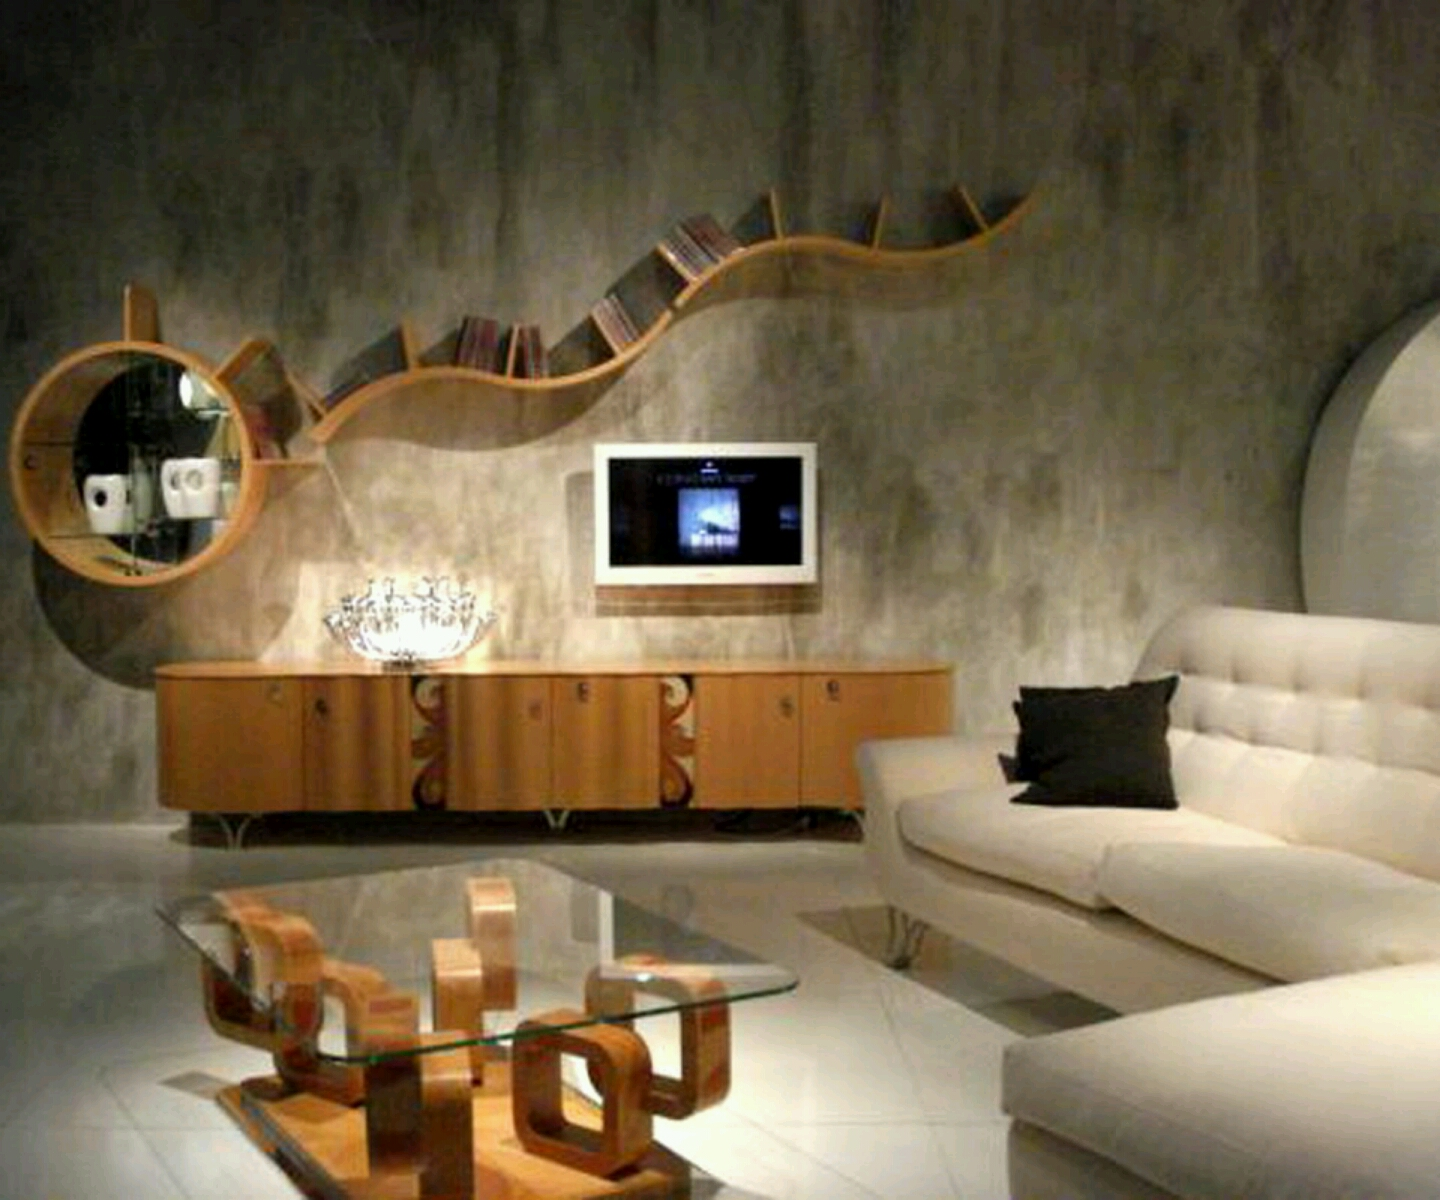 New home designs latest modern living room designs ideas - Contemporary design for small living room ...